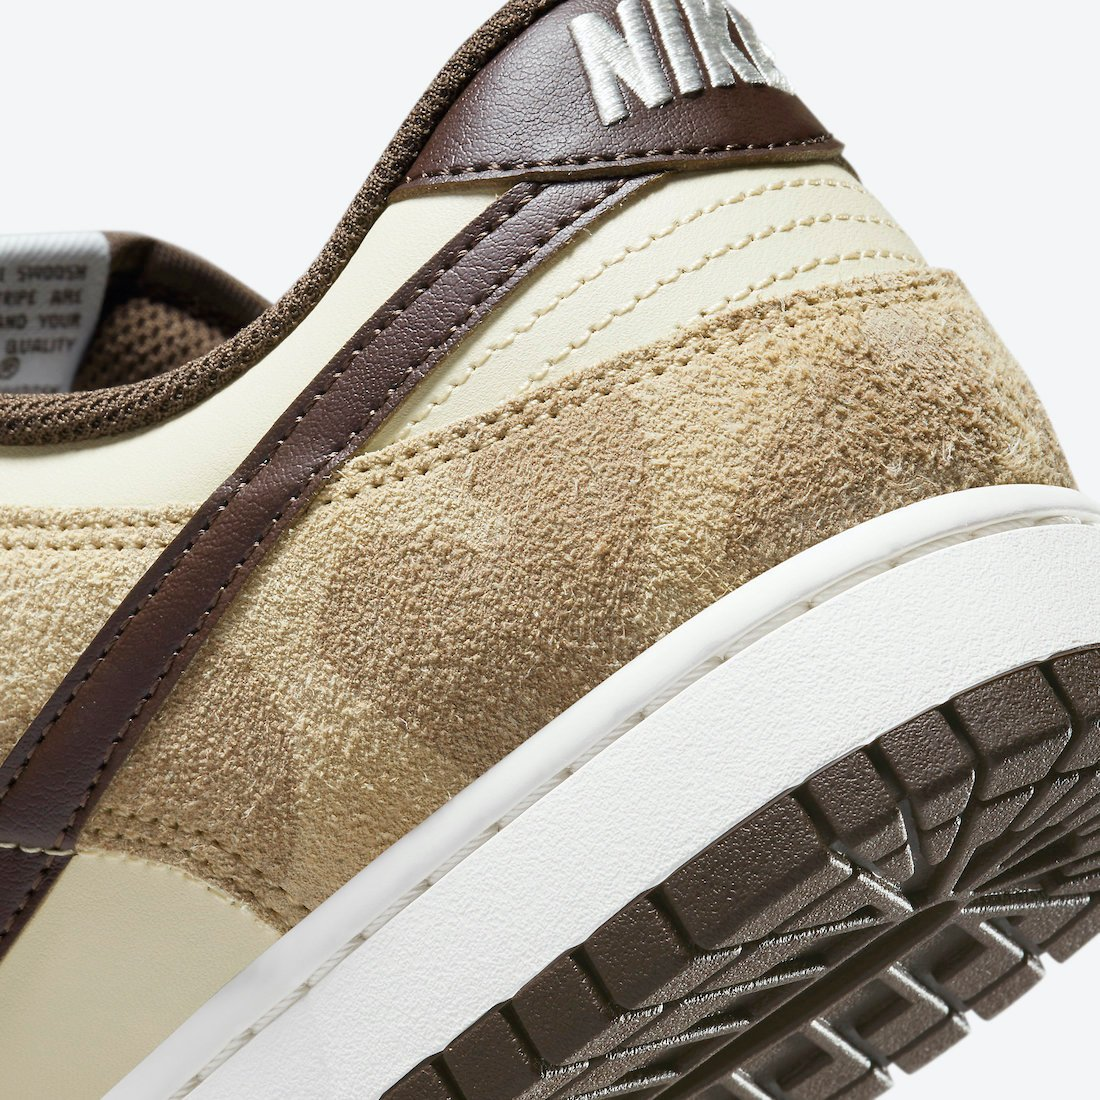 Nike Dunk Low Animal DH7913-200 Release Date